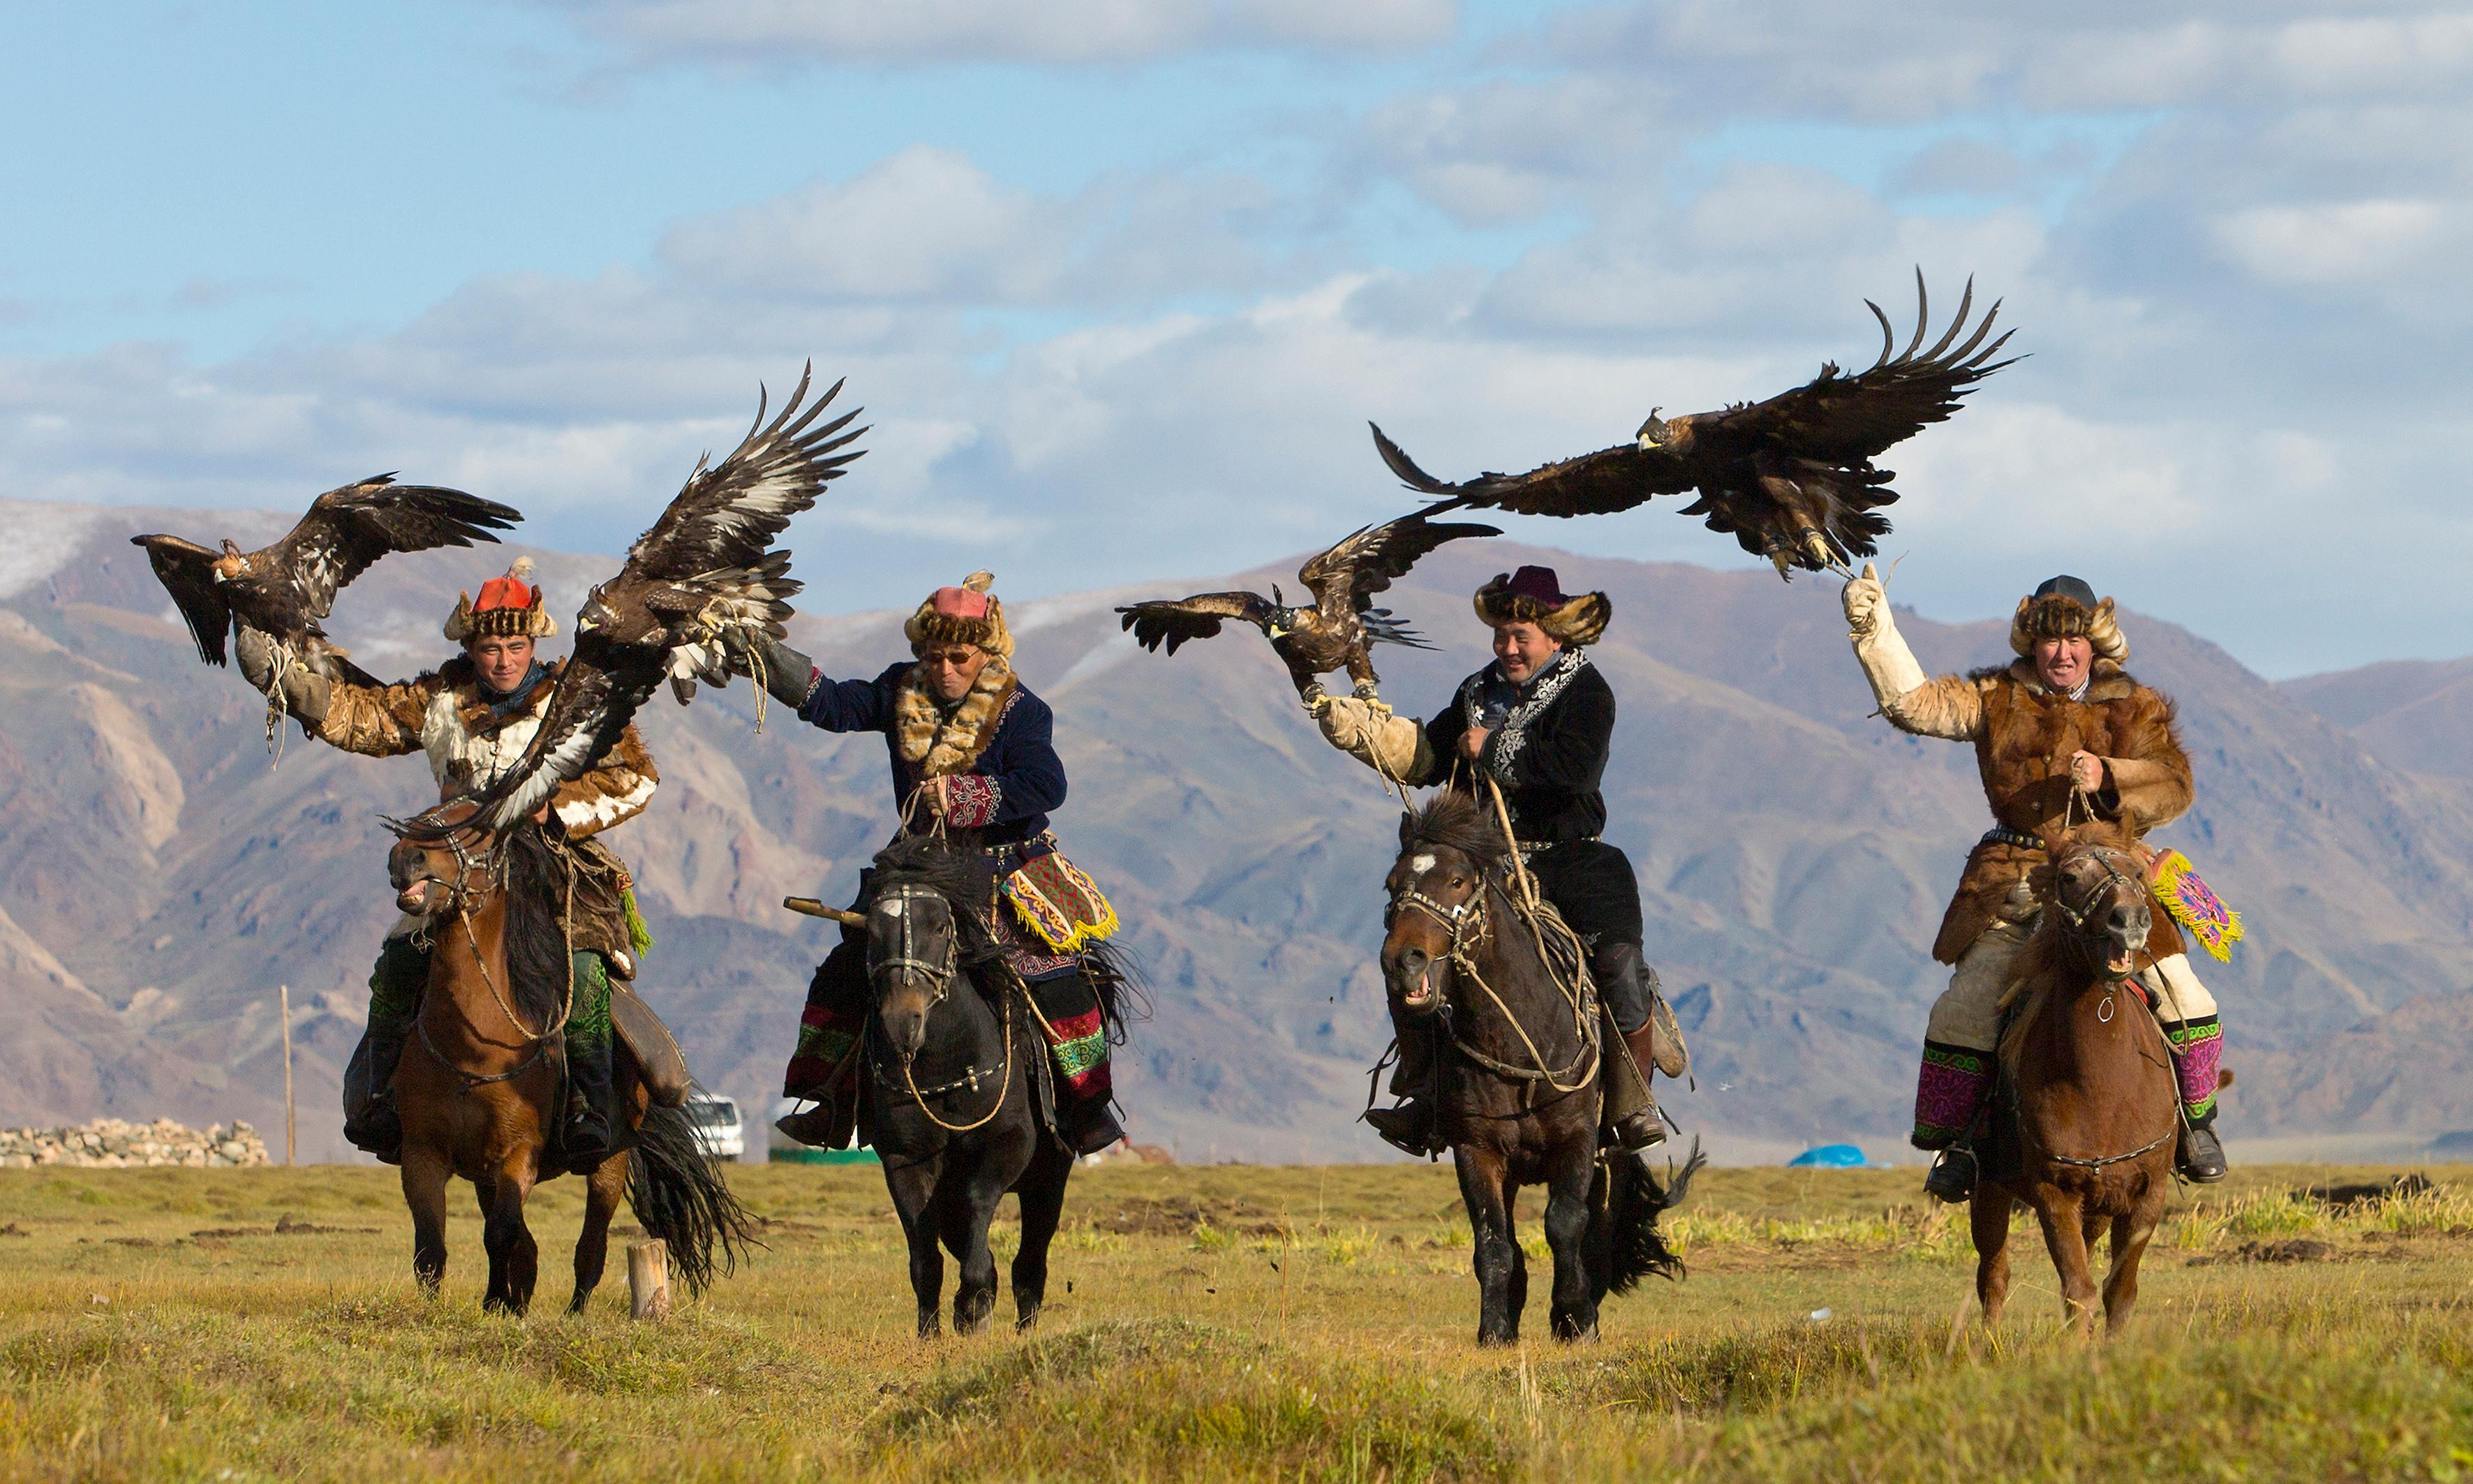 Eagle hunters, yurts and greasy mutton: how food poisoning in Mongolia brought me closer to nature